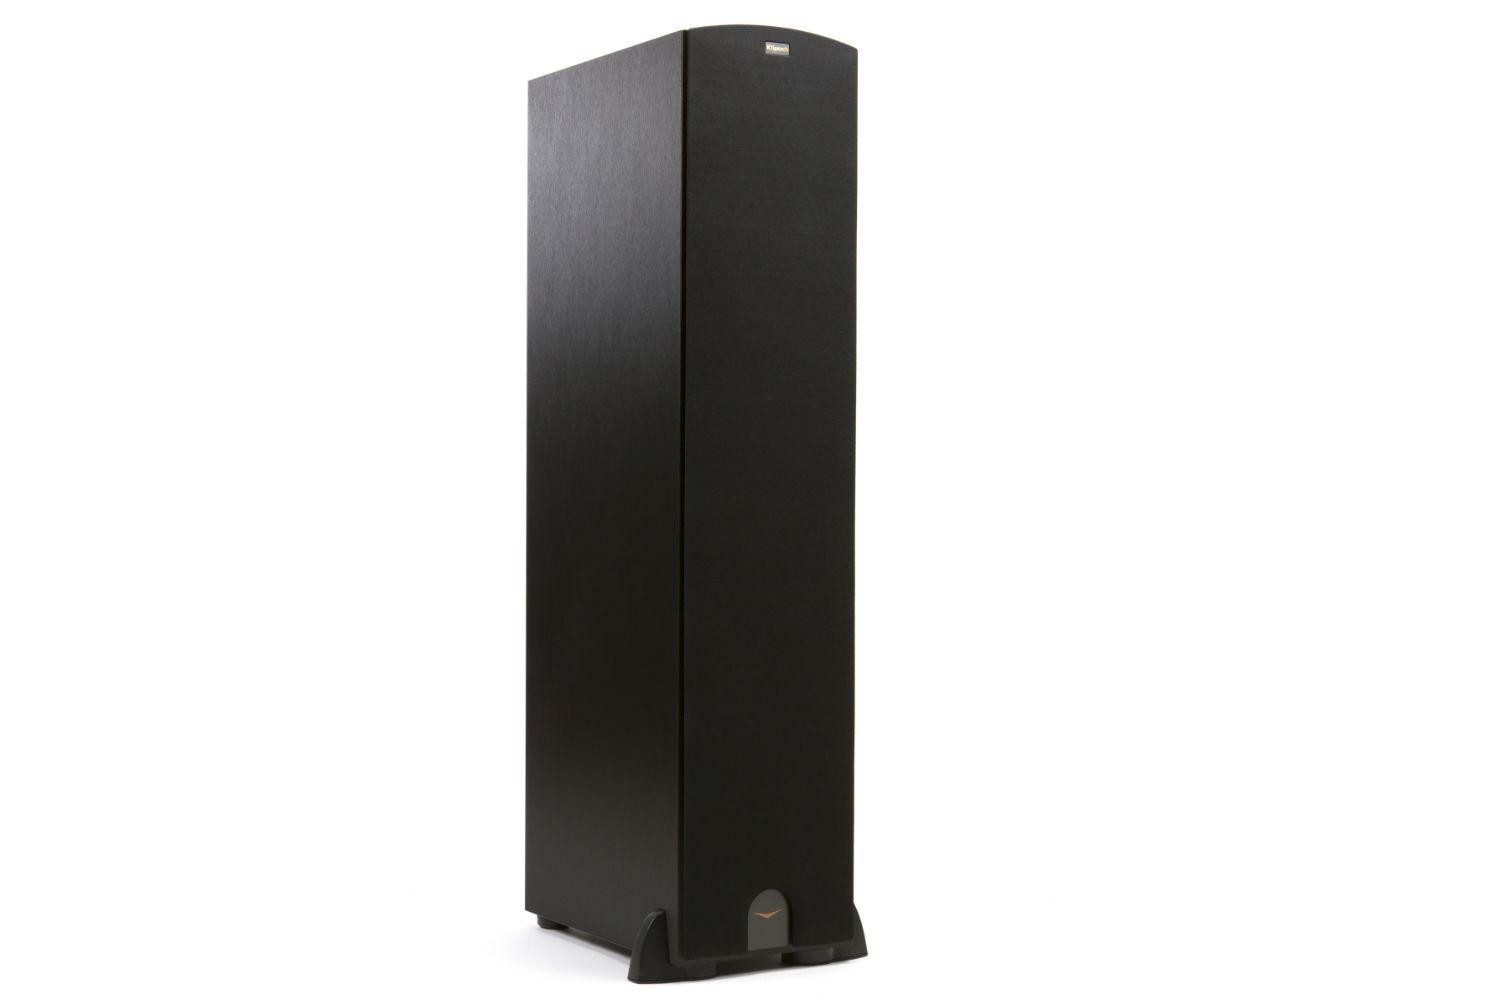 klipsch unveils stockpile new speakers reference home theater line r 28f grille